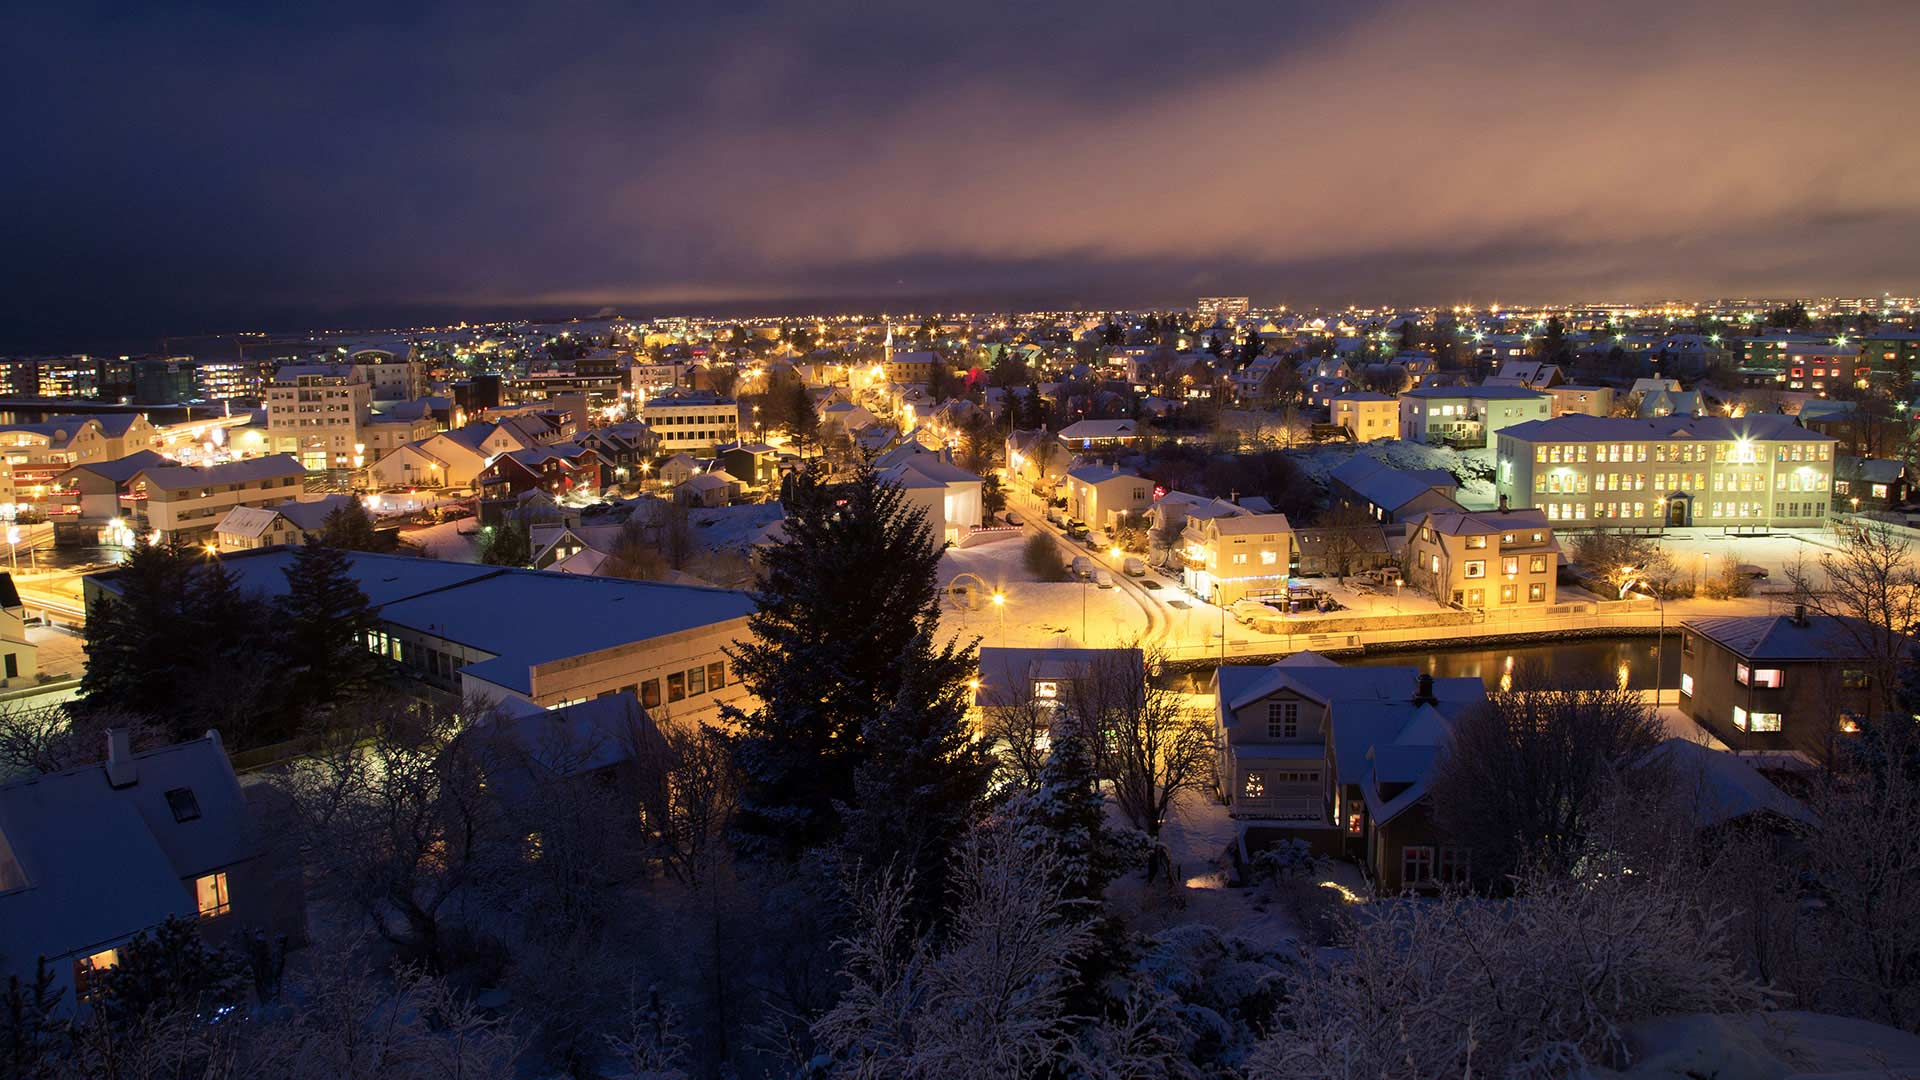 christmas in iceland 5 days 4 nights northern lights tours nordic visitor - Christmas In Iceland